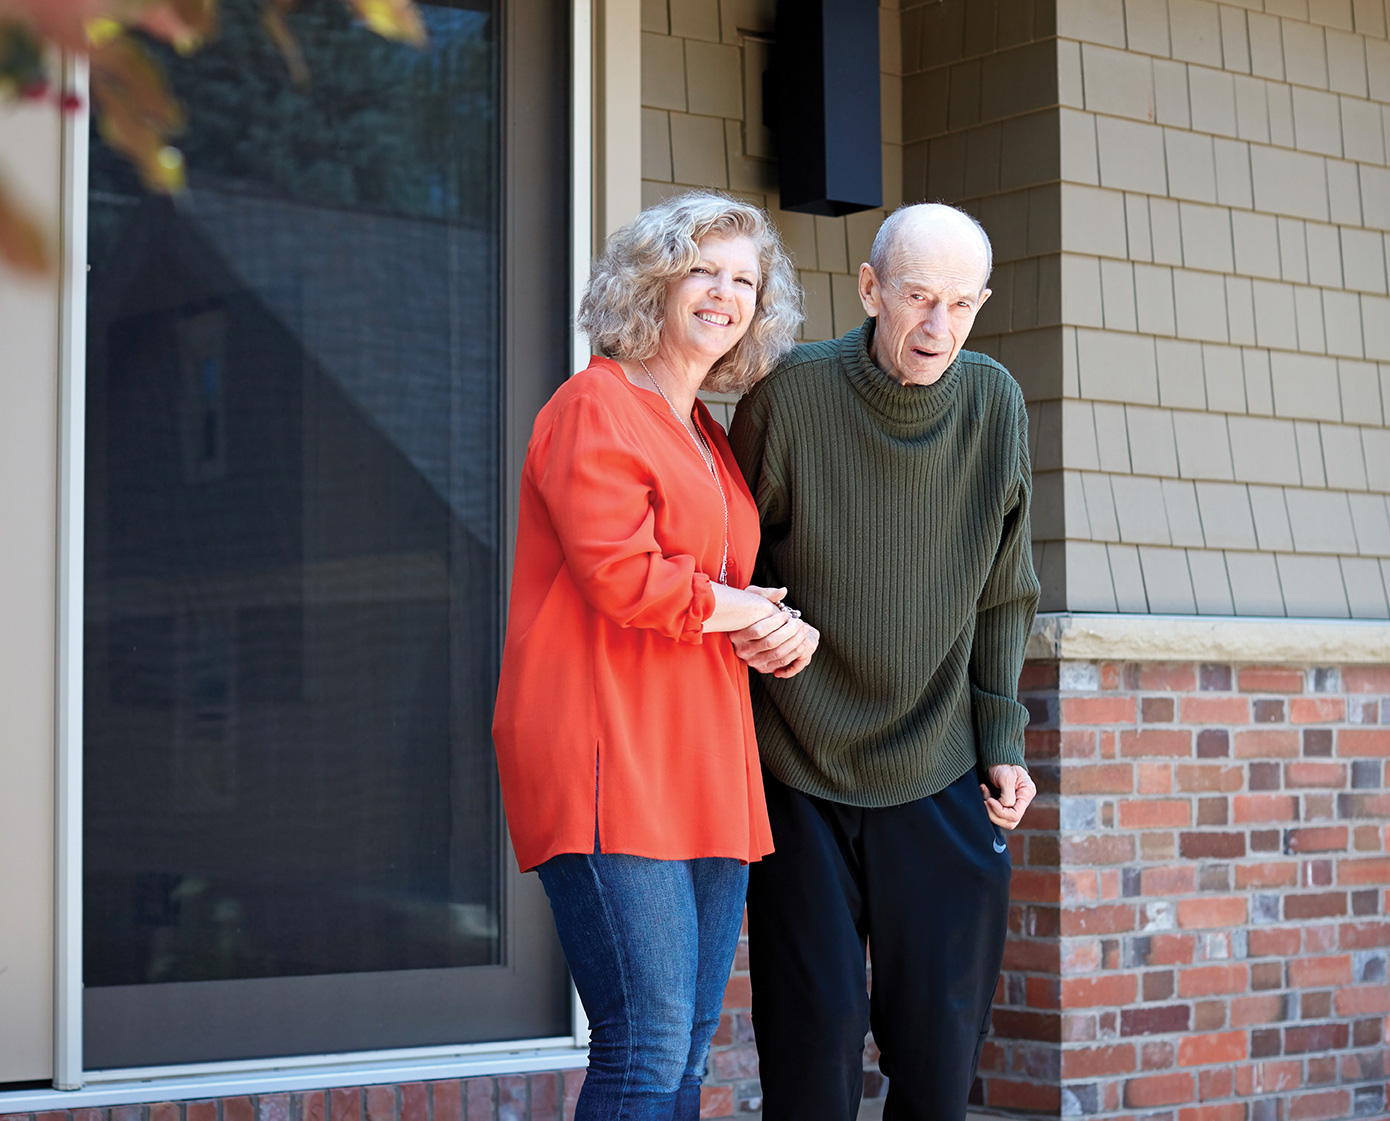 Lisa Poole, shown here with her father, John. Photo by Erin Brooke Burns.